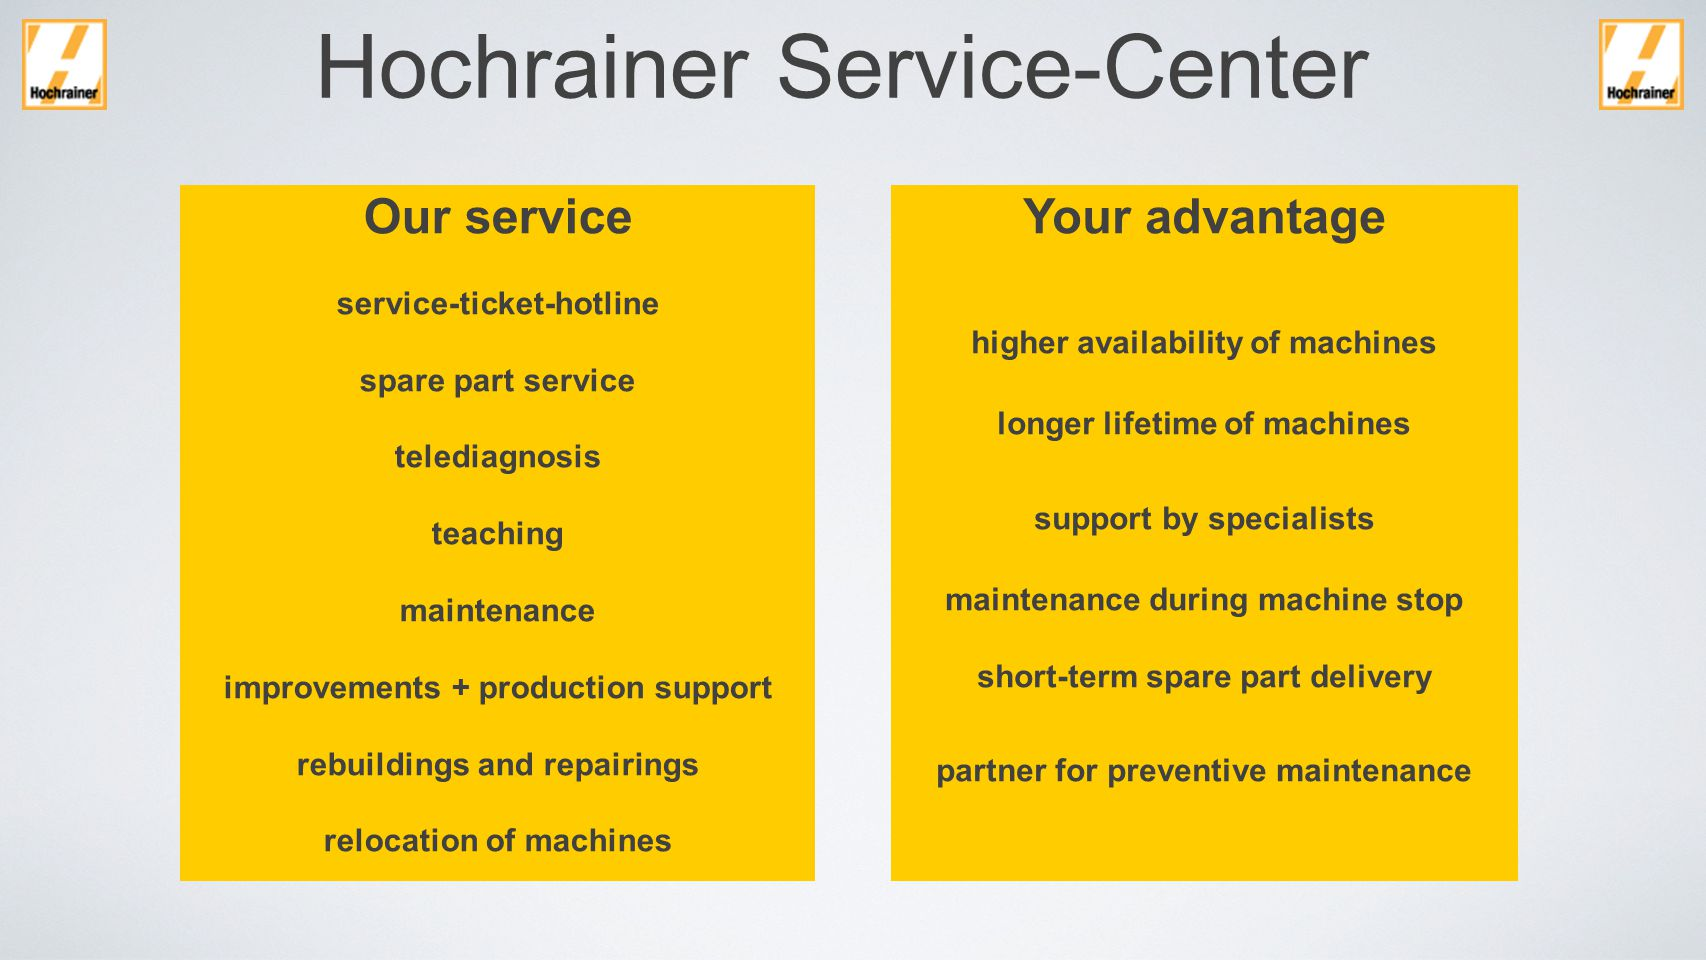 Hochrainer Service-Center Hochrainer Service Dailan China Hochrainer Service Freilassing Europe Germany Hochrainer Service Marietta North America Worldwide we assist our customers in actual projects with our project teams at existing machines with our service teams